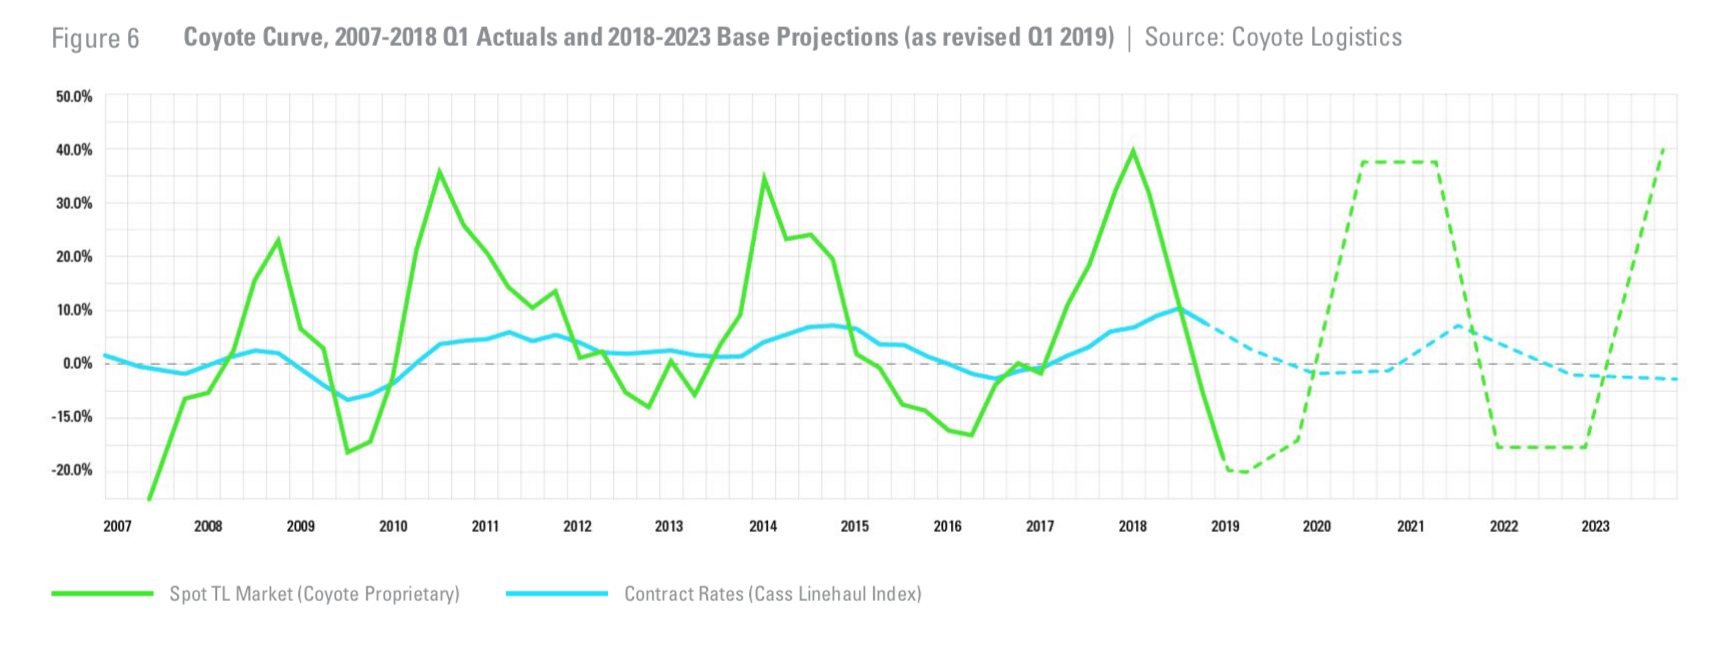 Coyote Curve, 2007-2018 Q1 Actuals and 2018-2023 Base Projections (as revised Q1 2019)